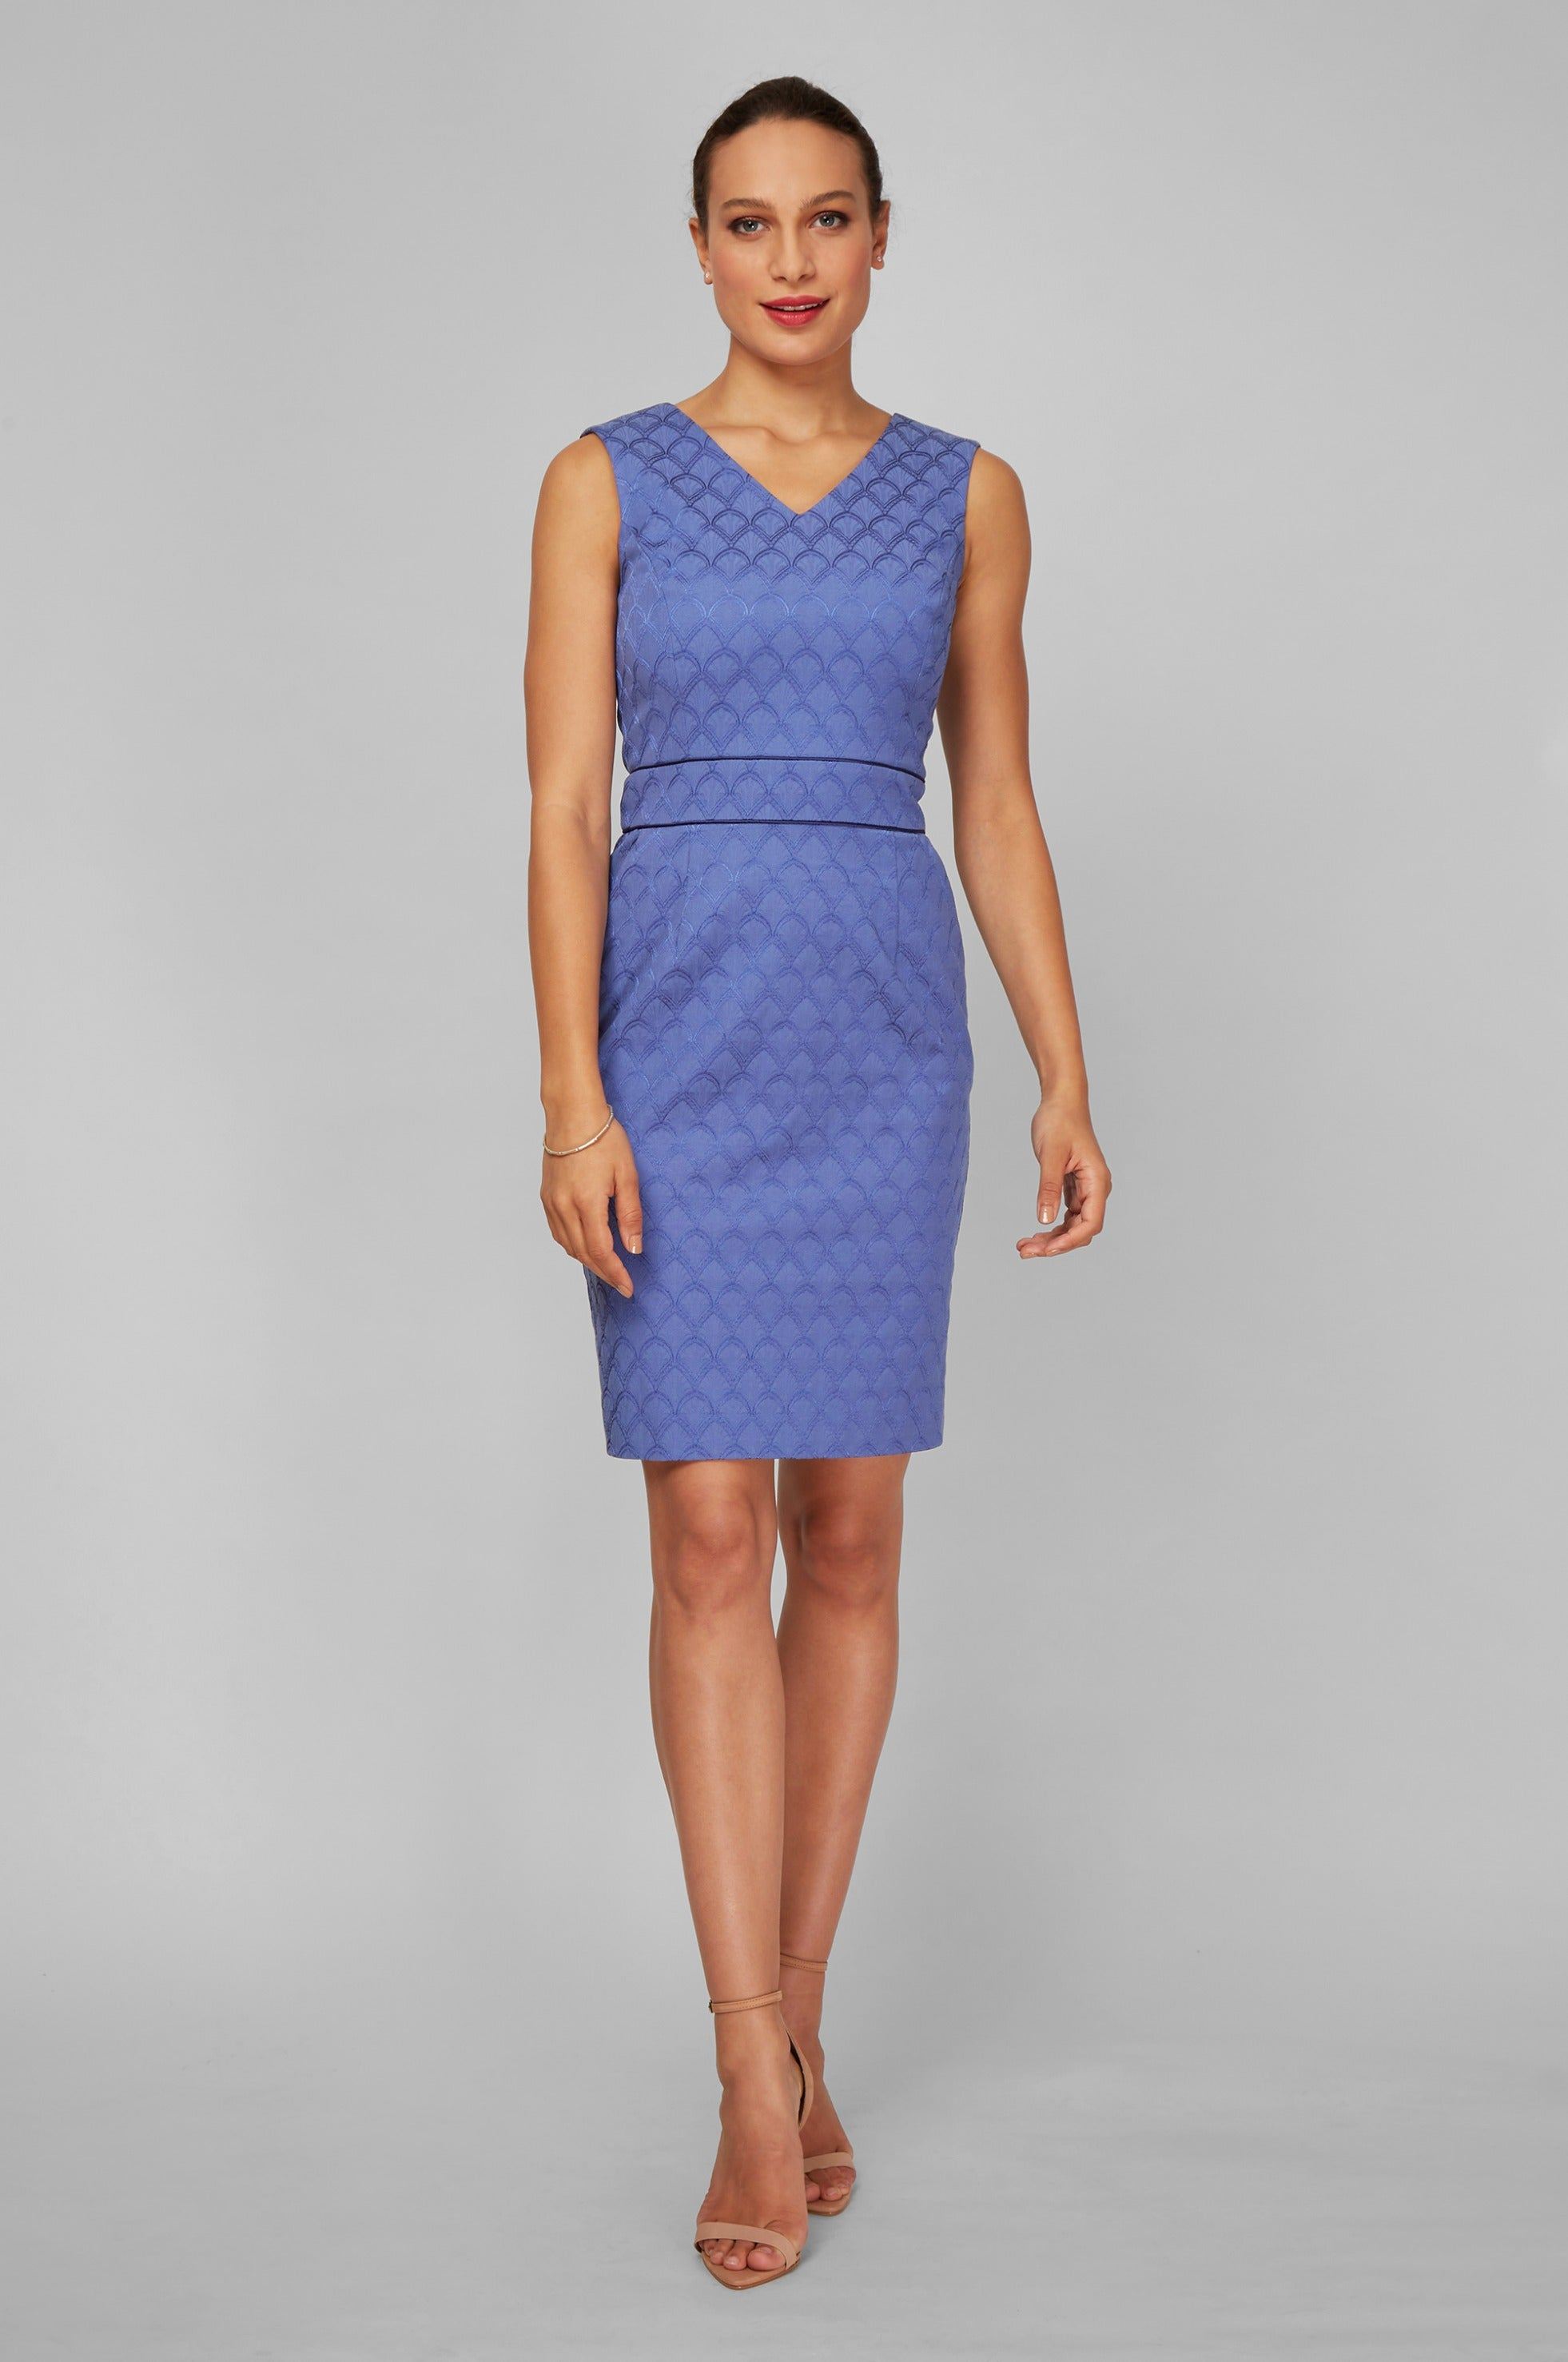 Women's Alyssa Dress In Periwinkle Jacquard | Nora Gardner - Front